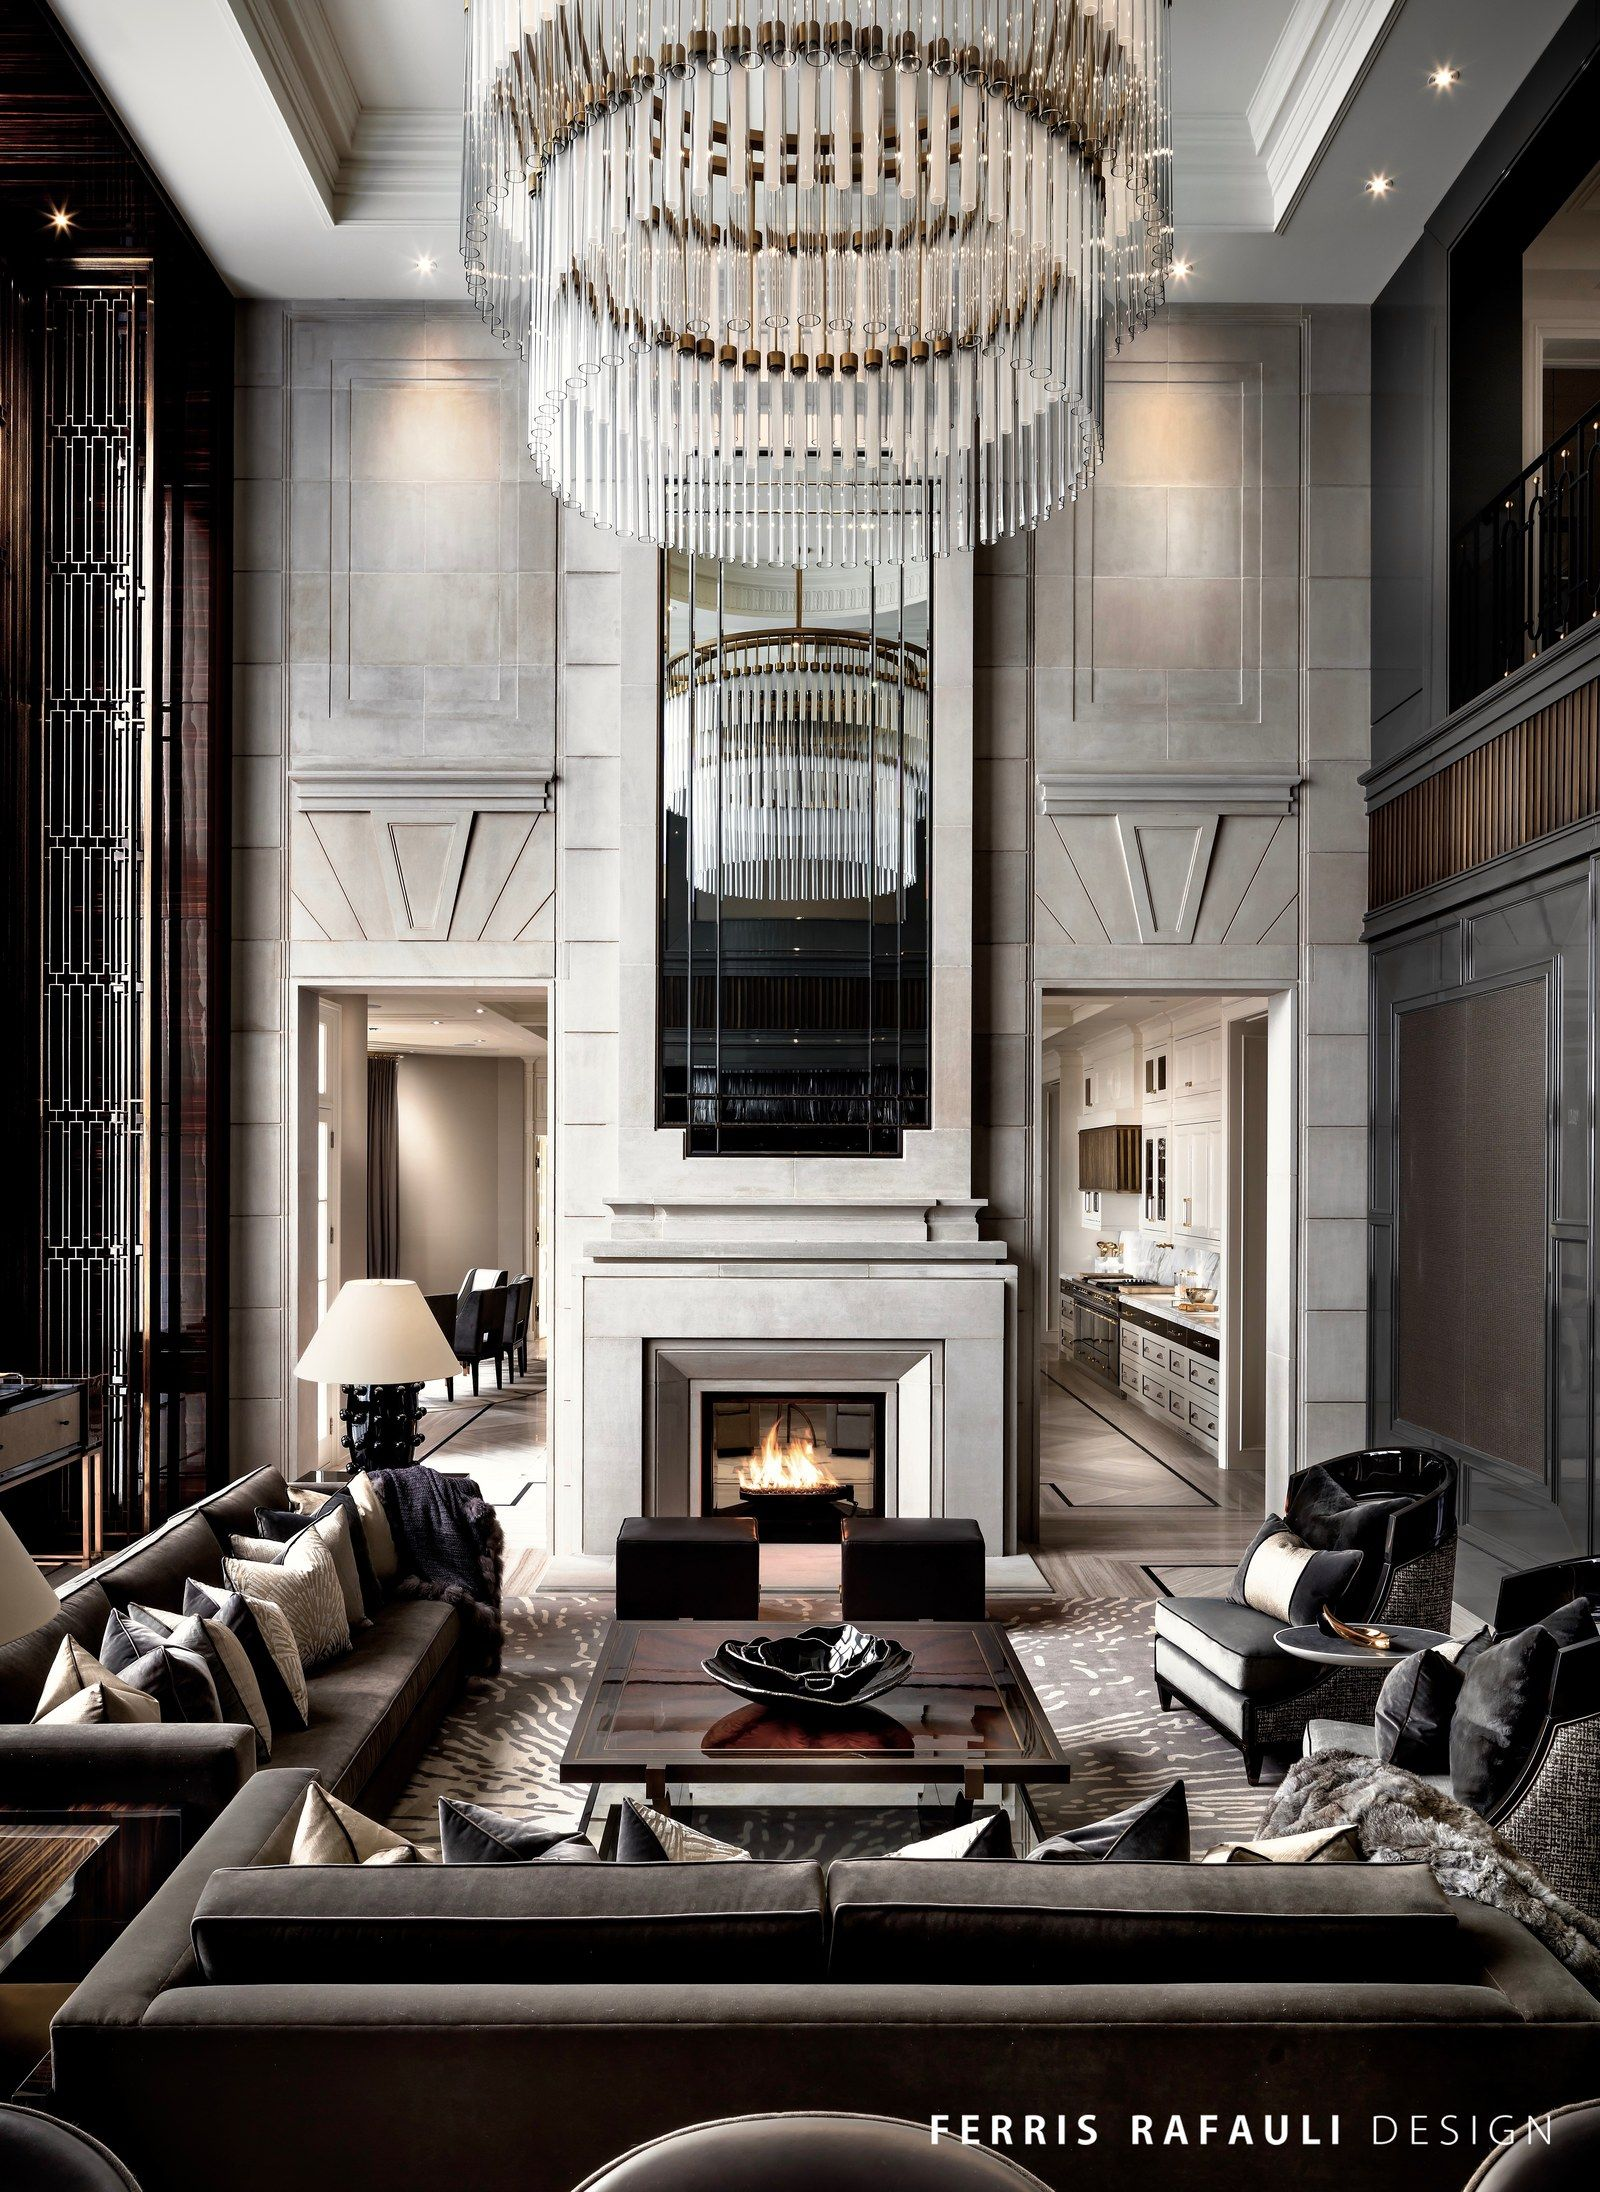 Exceptional Ferris Rafauli Specializes In Integrating Ultra Luxury Interior Designsu2026 Home Design Ideas